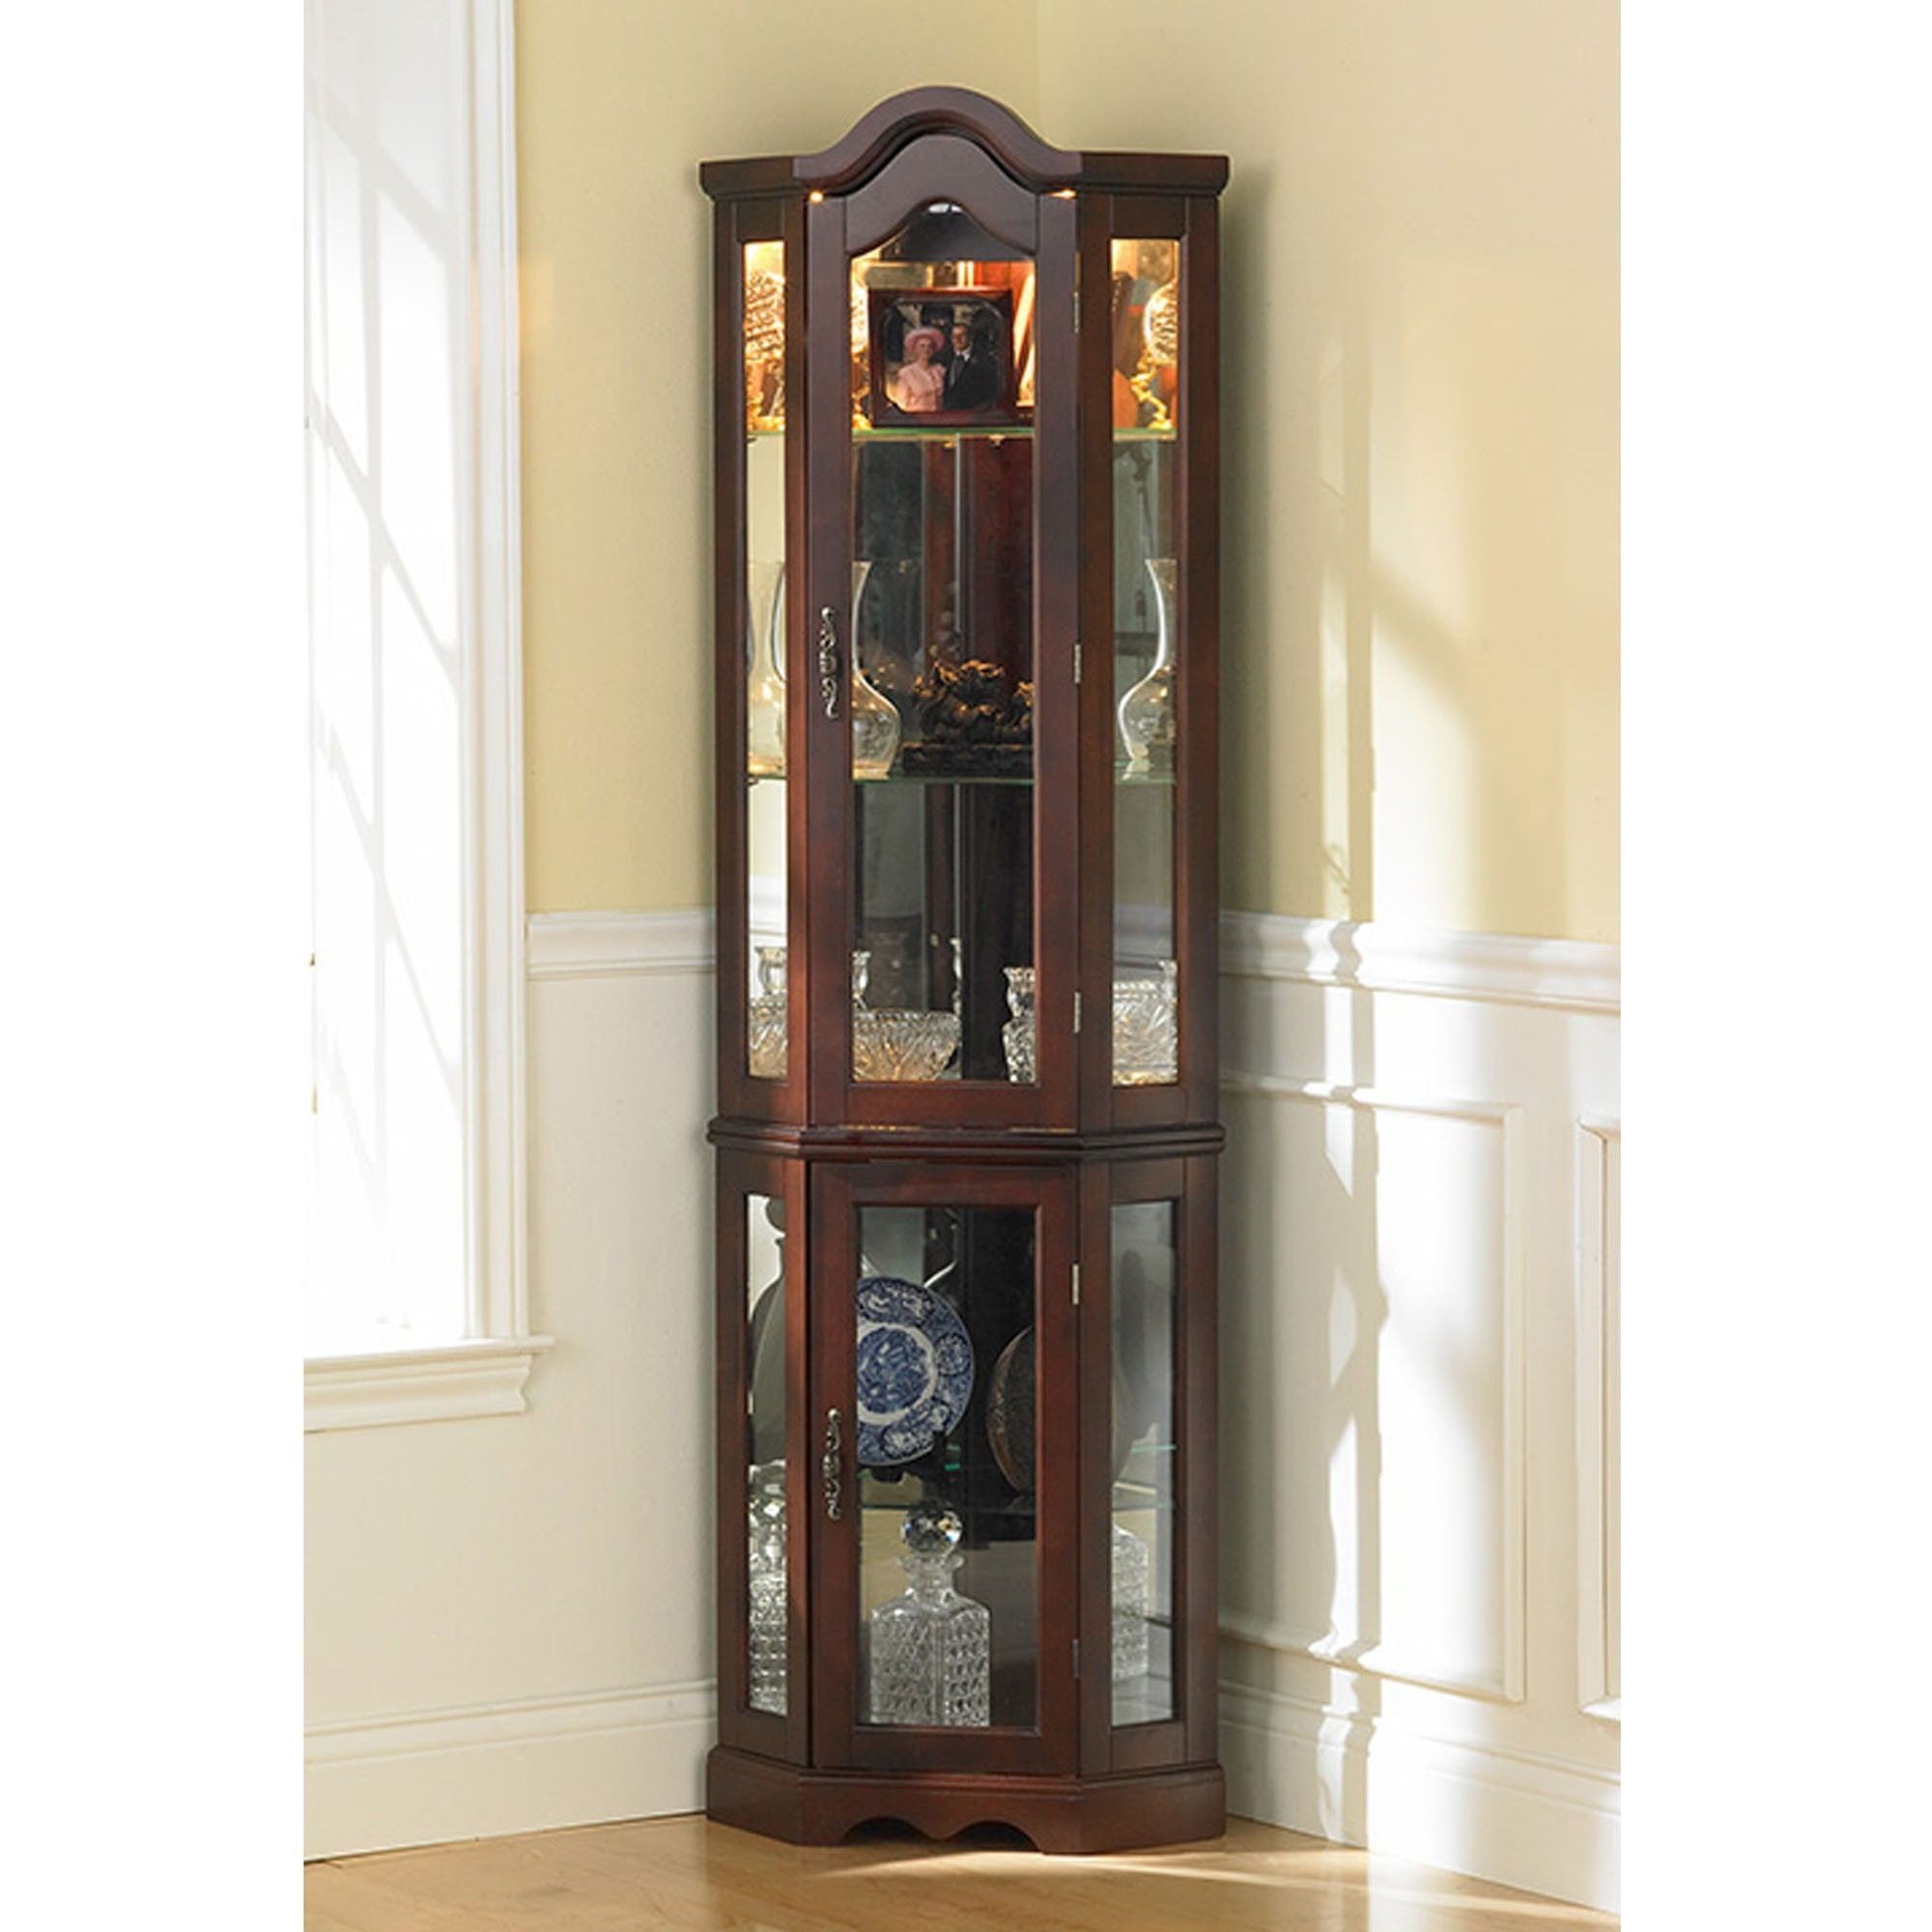 Southern Enterprises China Cabinets Lighted Corner Curio Cabinet In Mahogany Brown